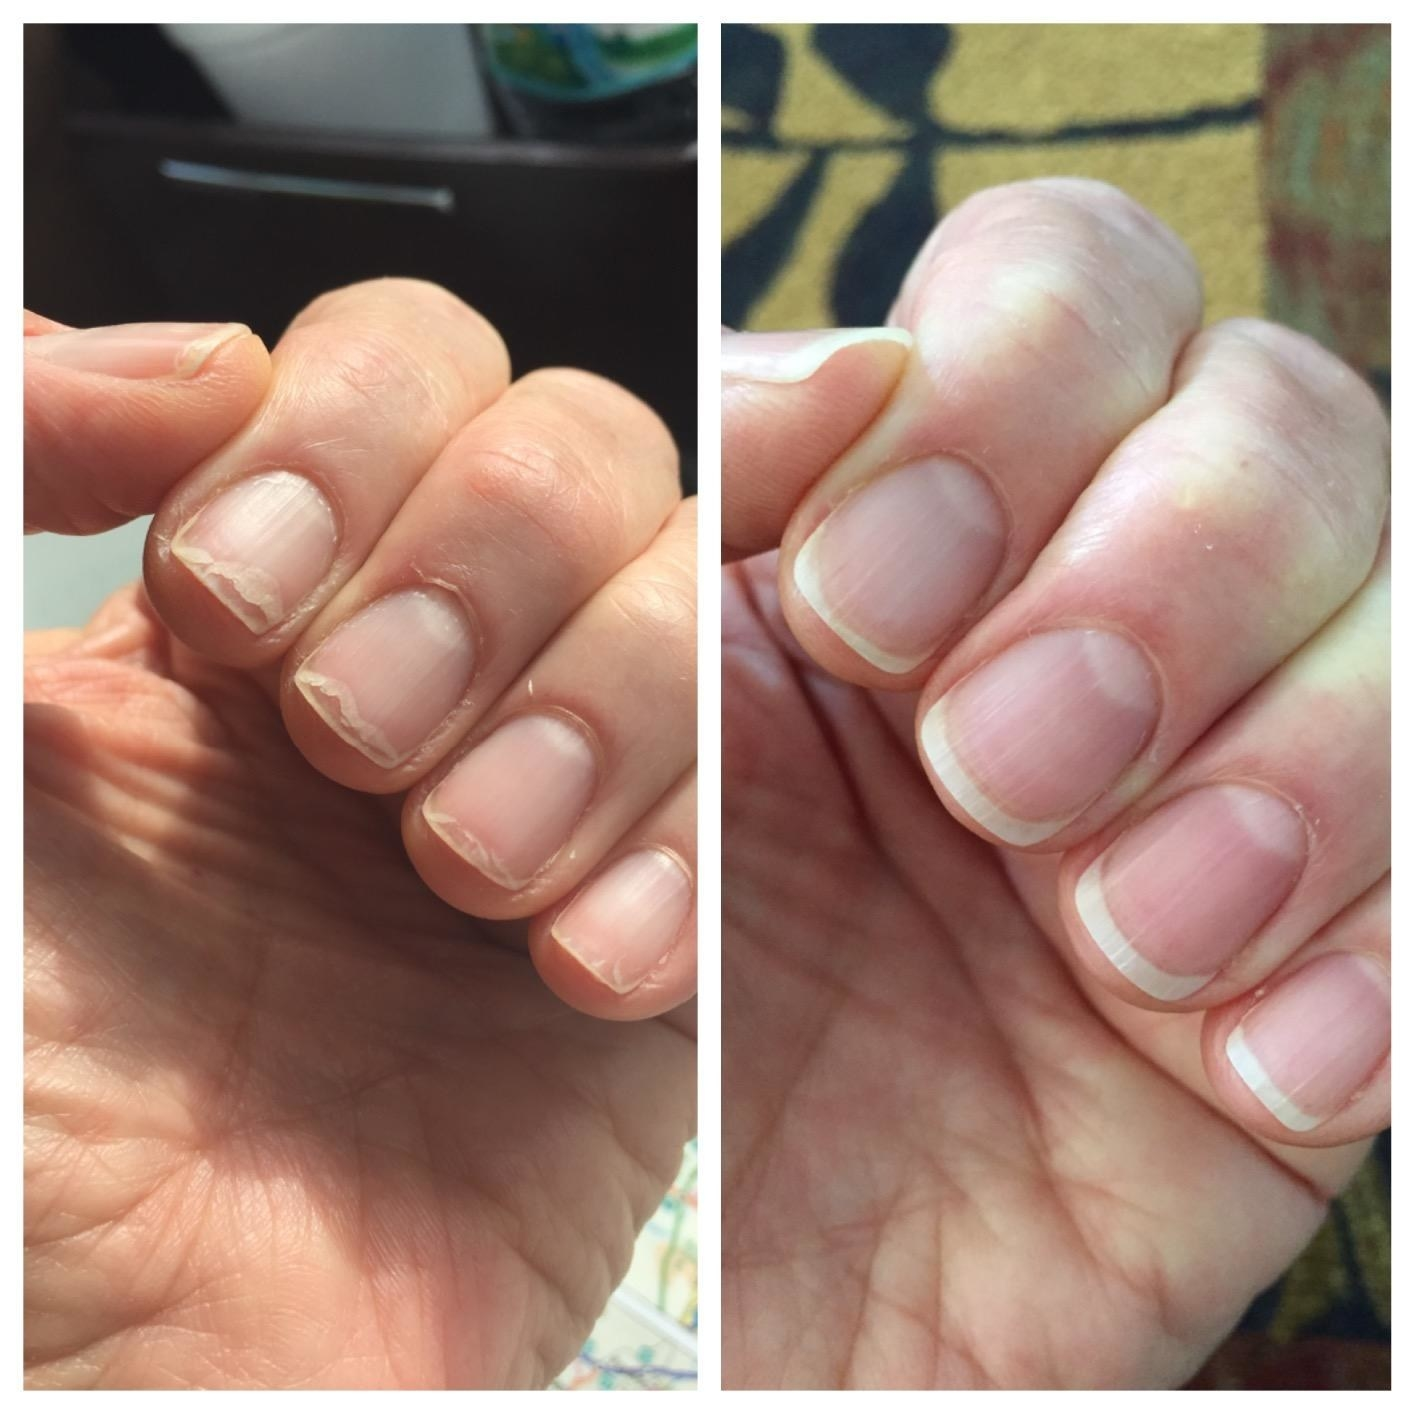 before and after of reviewer's nails looking brittle, then looking clear and strong after using oil